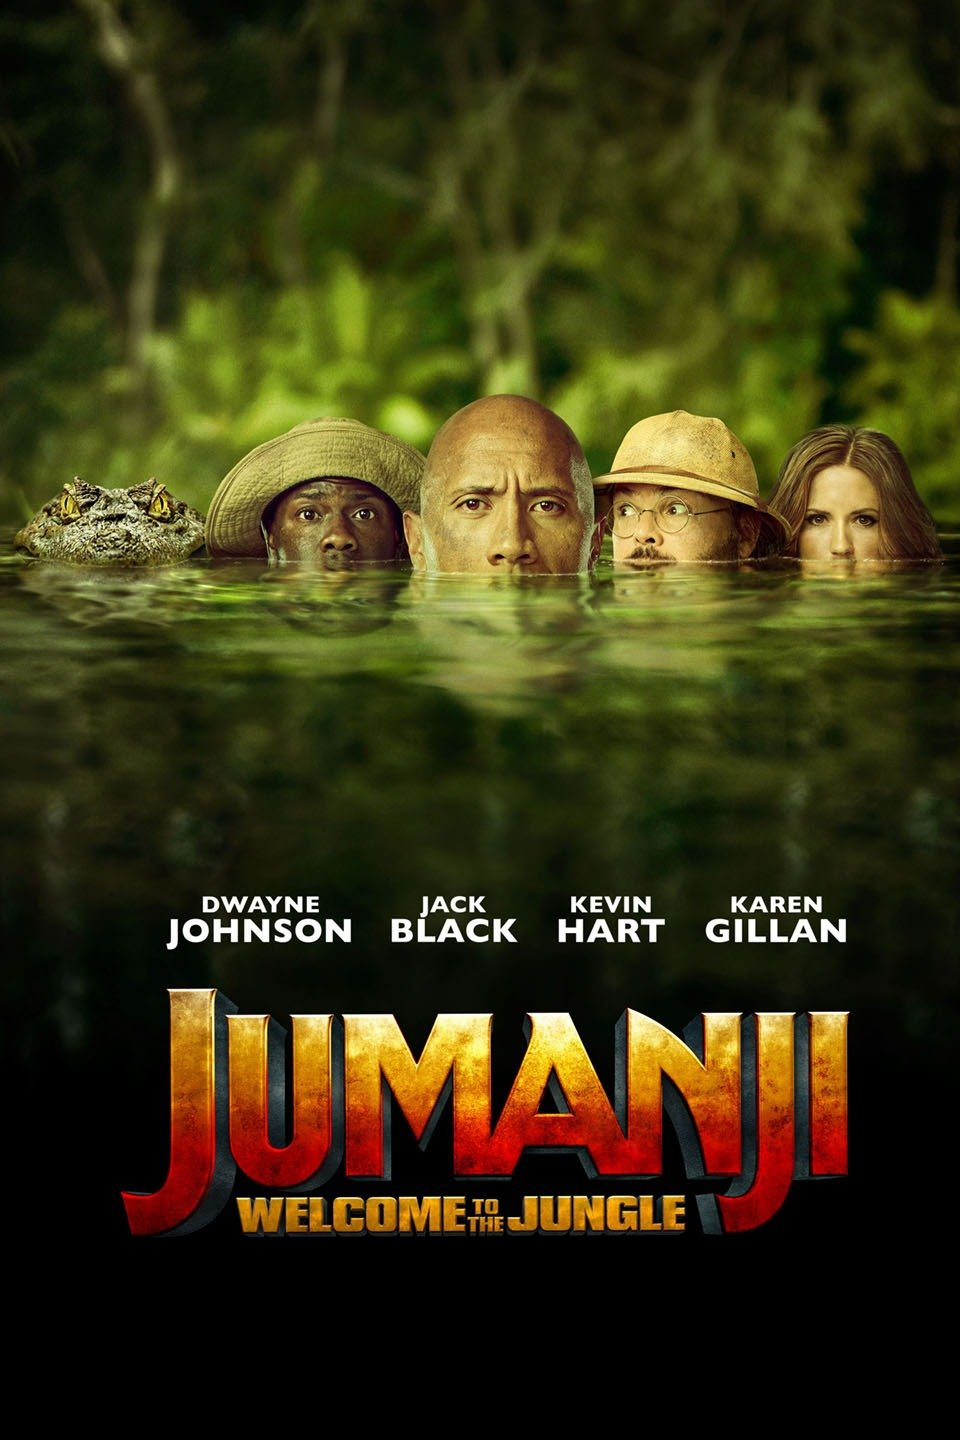 Download Jumanji: Welcome to the Jungle (2017) Full Movie In Hindi-English-Tamil-Telugu (Multi Audio) Bluray 480p [400MB] | 720p [1.2GB] | 1080p [2.7GB]